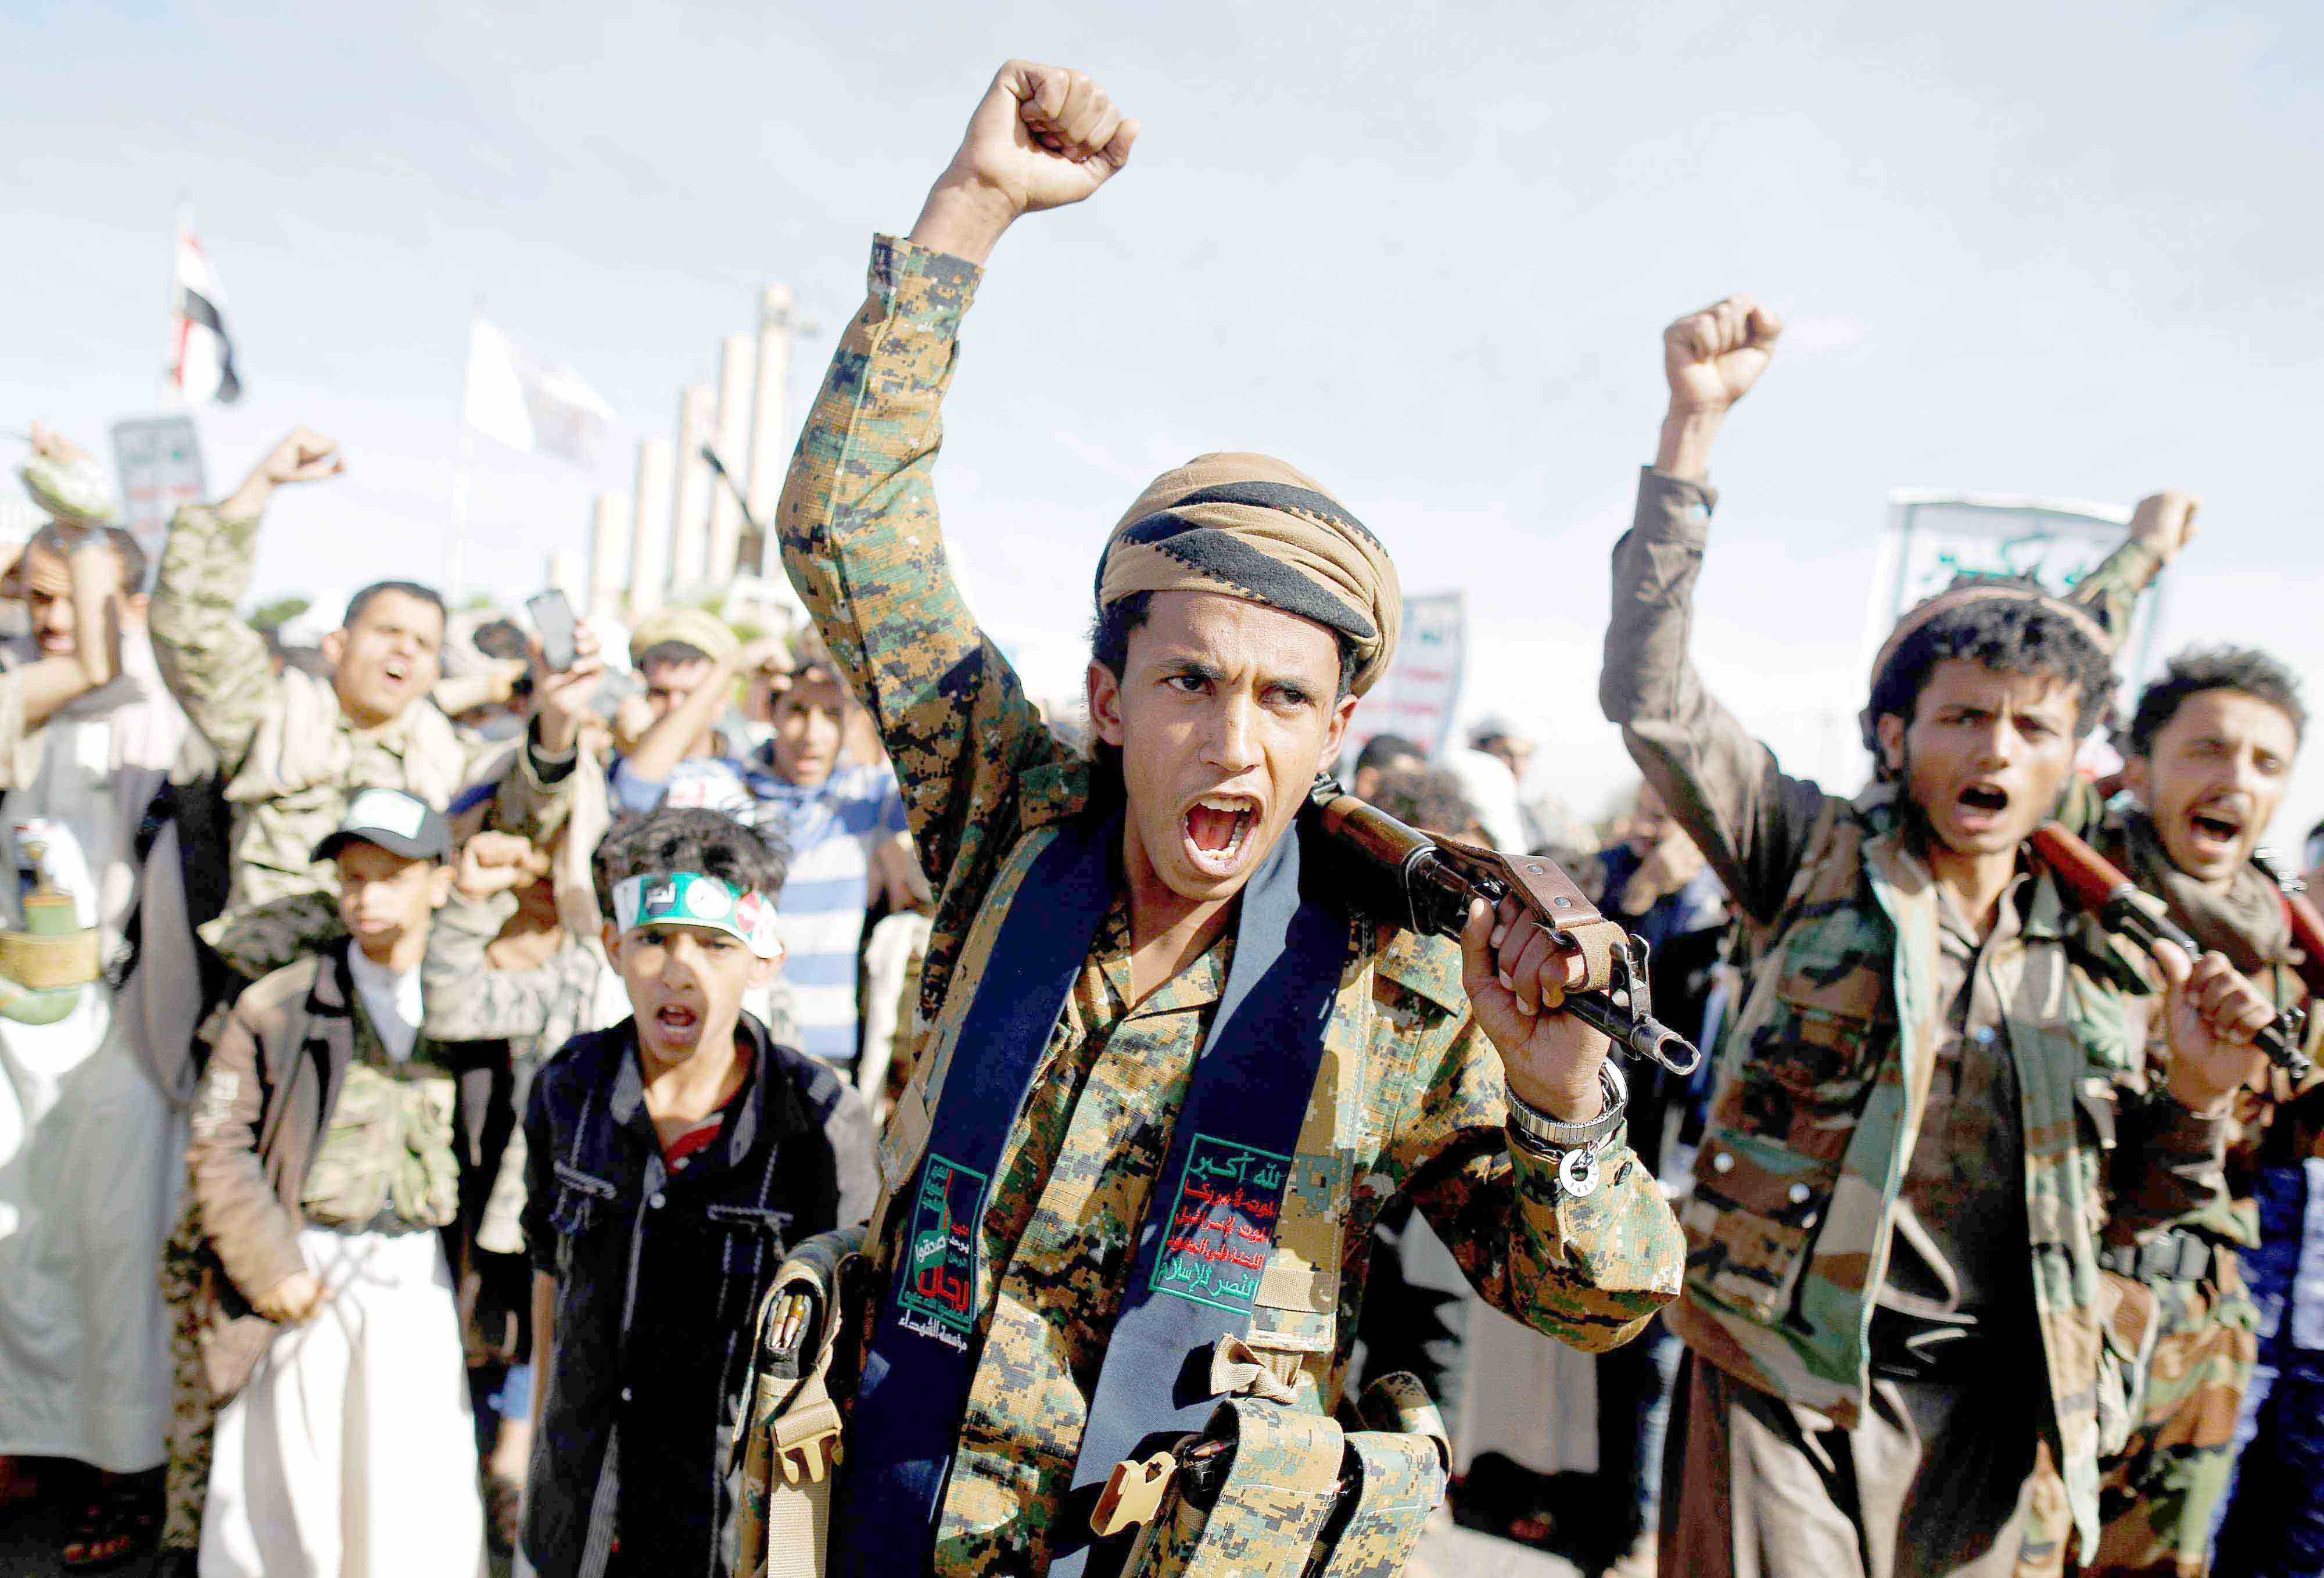 Houthi fighters shout slogans as they attend a rally in Sanaa, March 26. (Reuters)